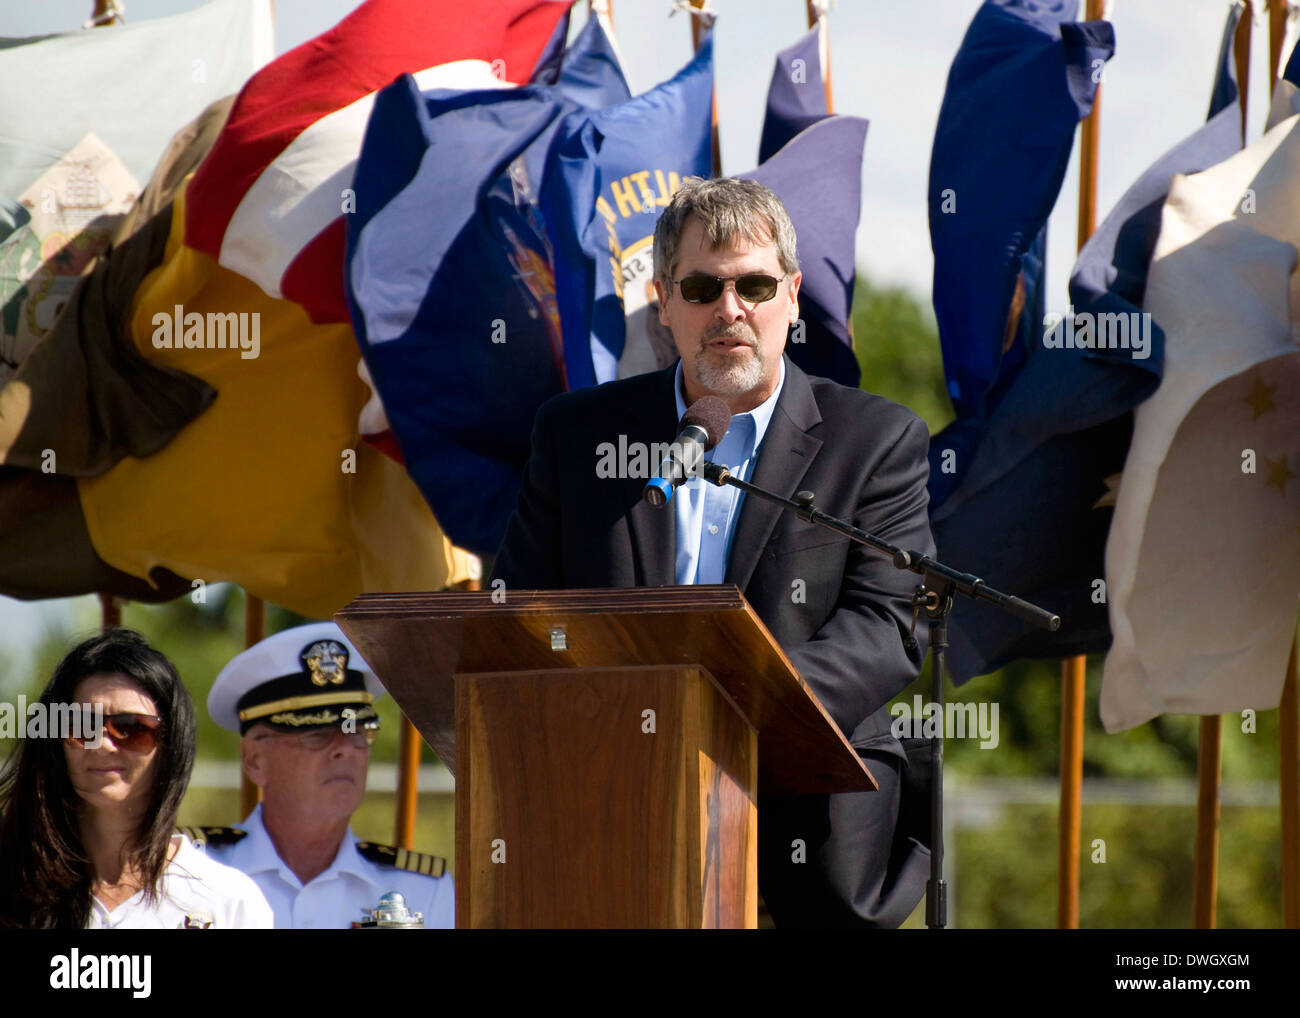 Capt. Richard Phillips, former Captain of the container ship MV Maersk Alabama, thanks SEAL team members for his - Stock Image